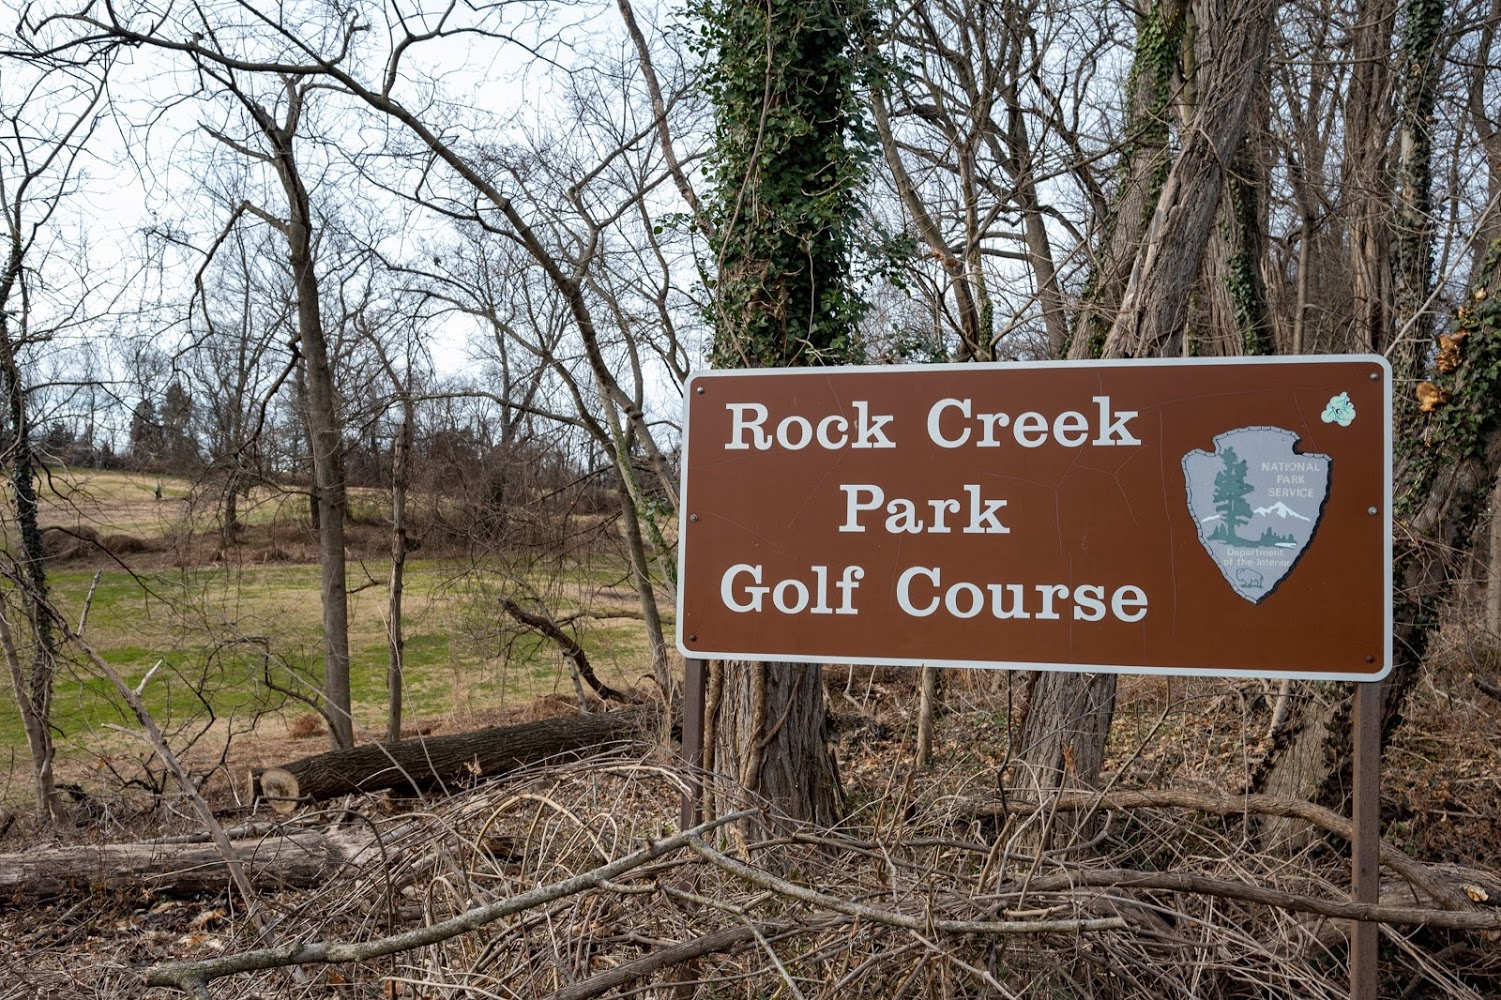 Rock Creek Park Golf